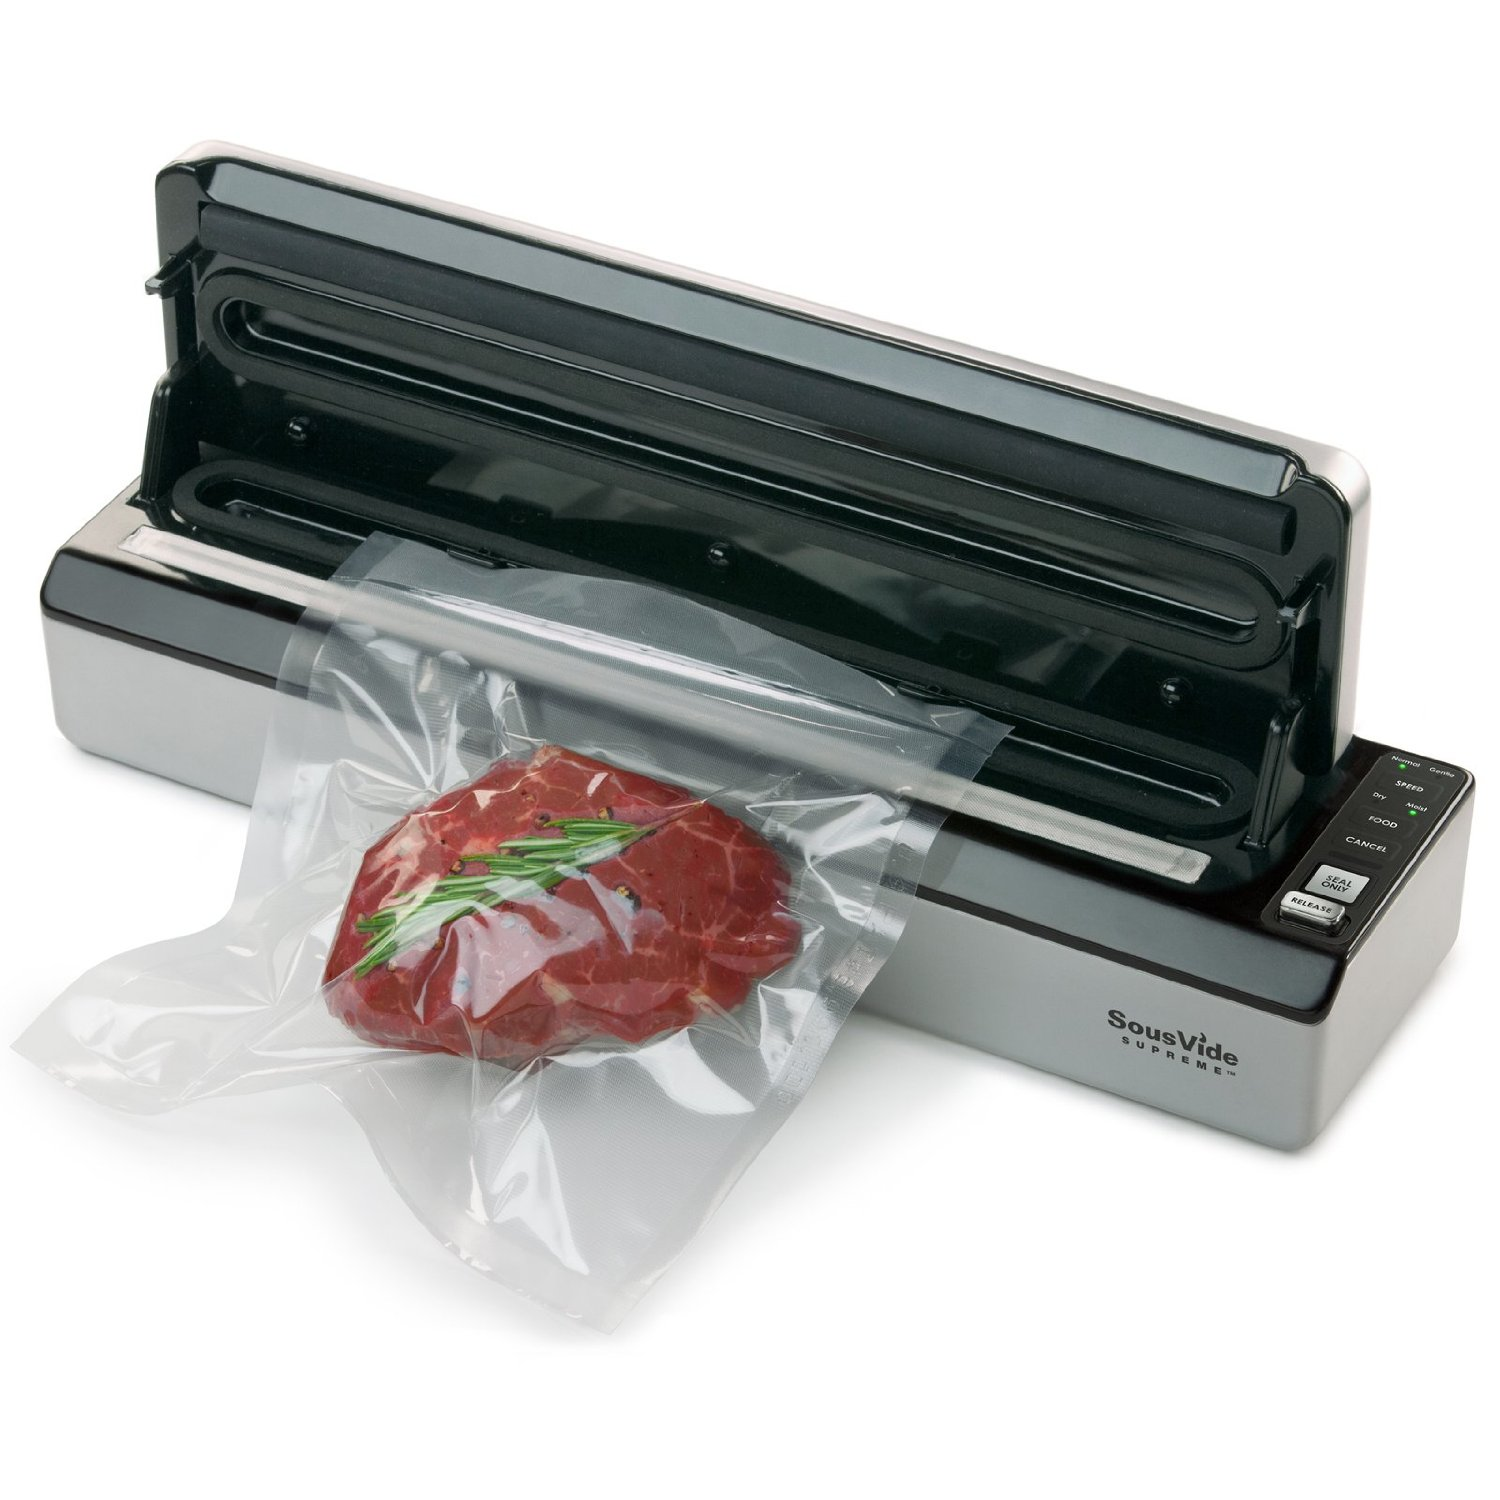 Food Vacuum Sealer Sous Vide Supreme SVV 00300